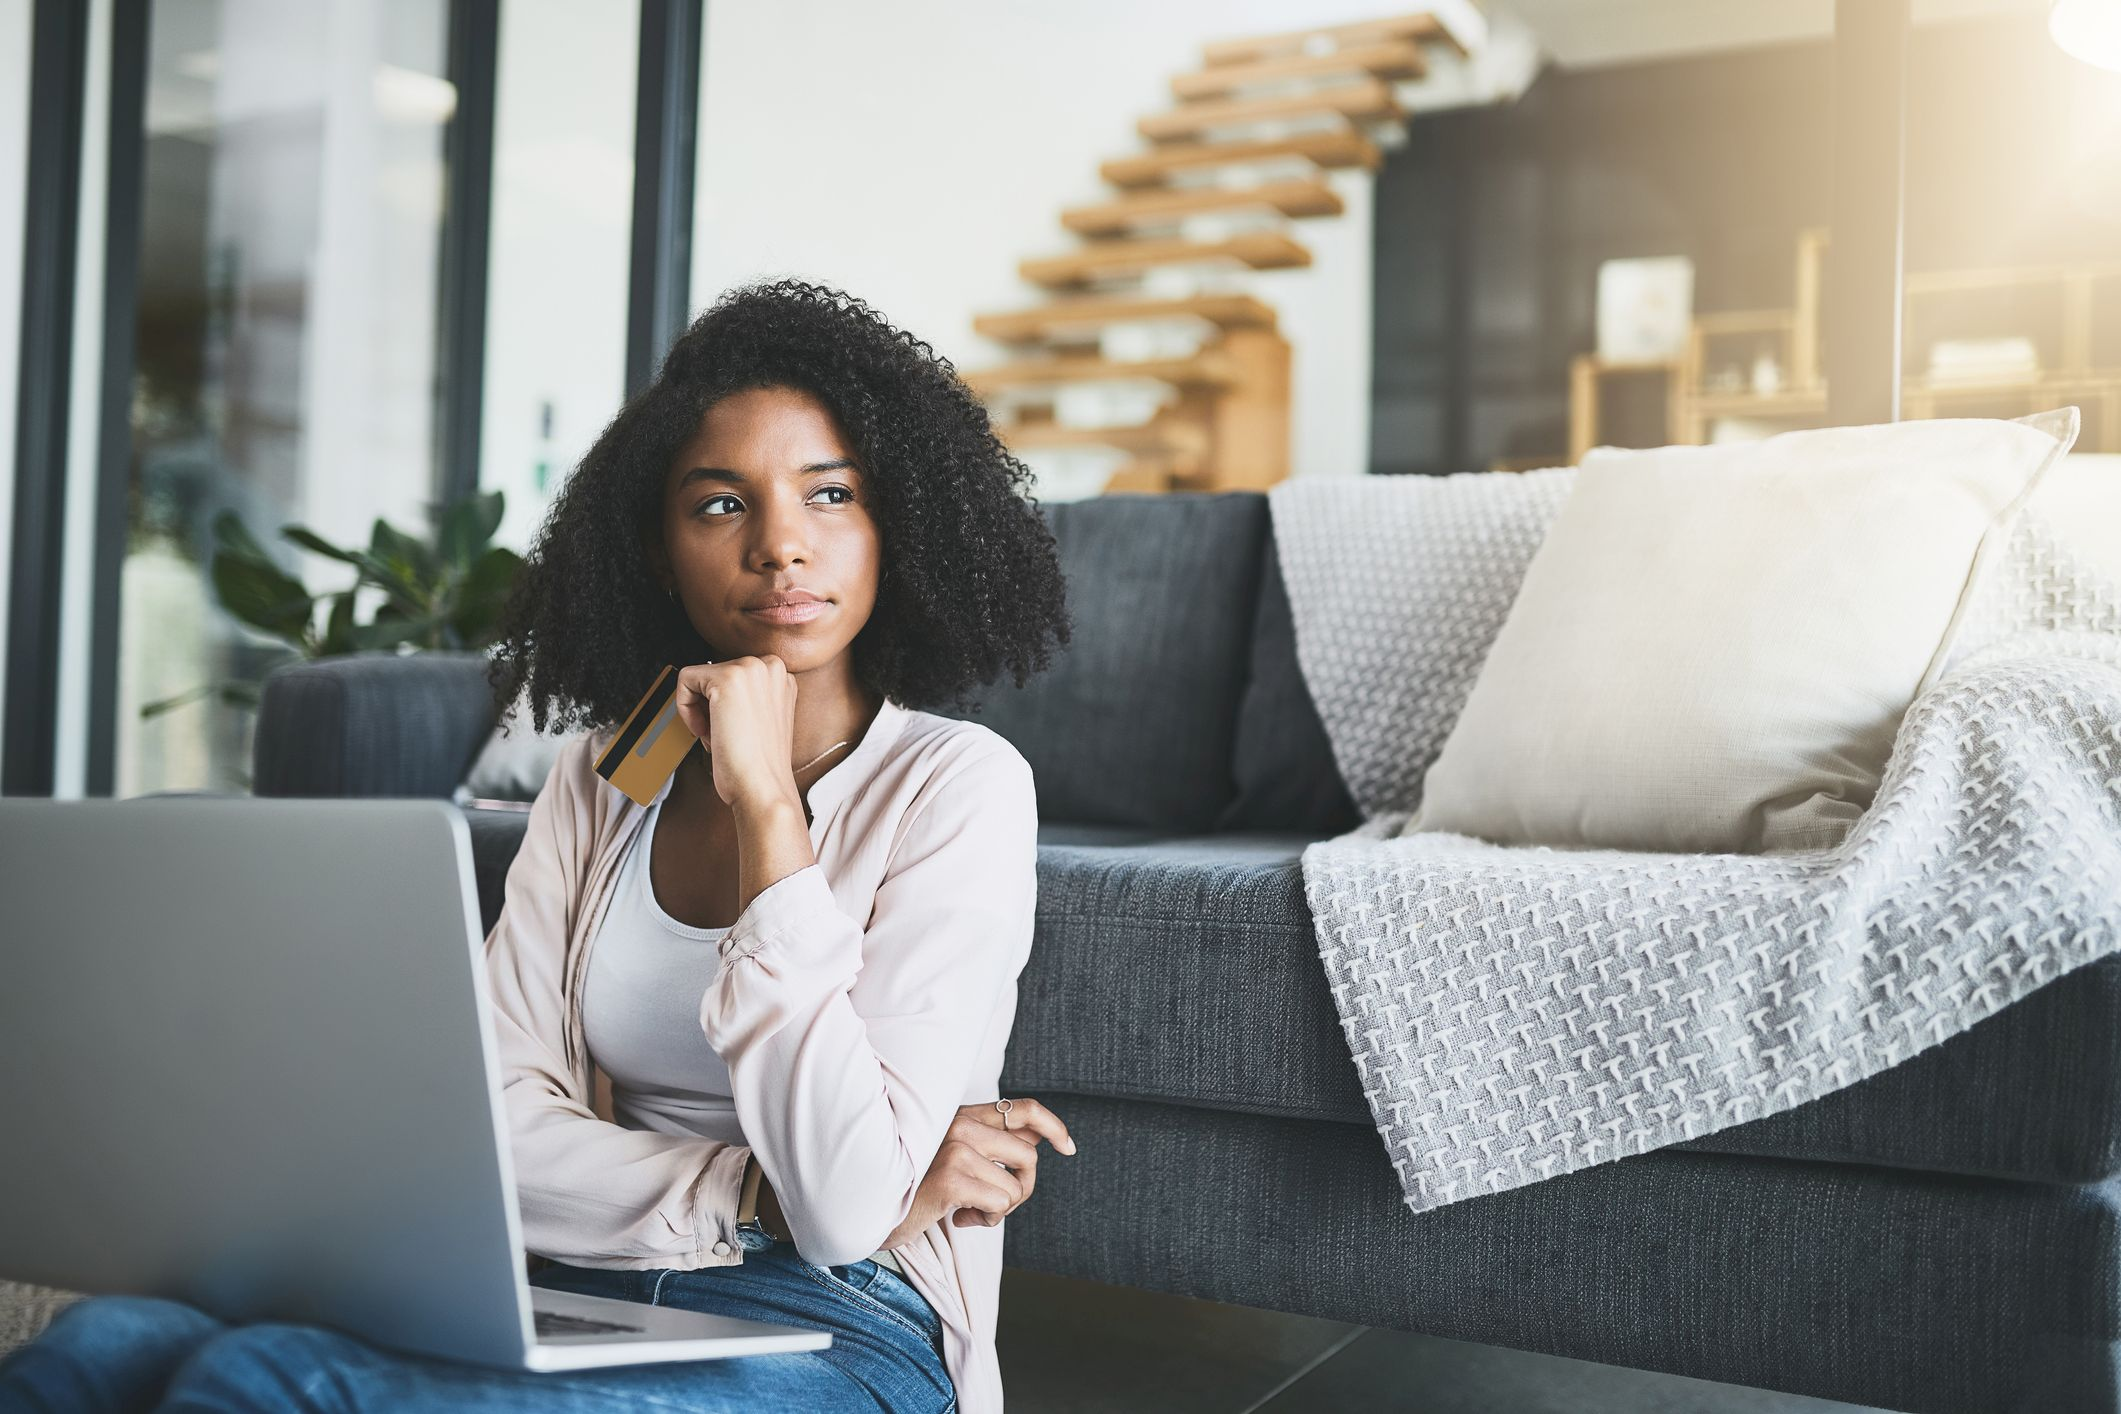 Woman thinking about using credit card to pay down student loans